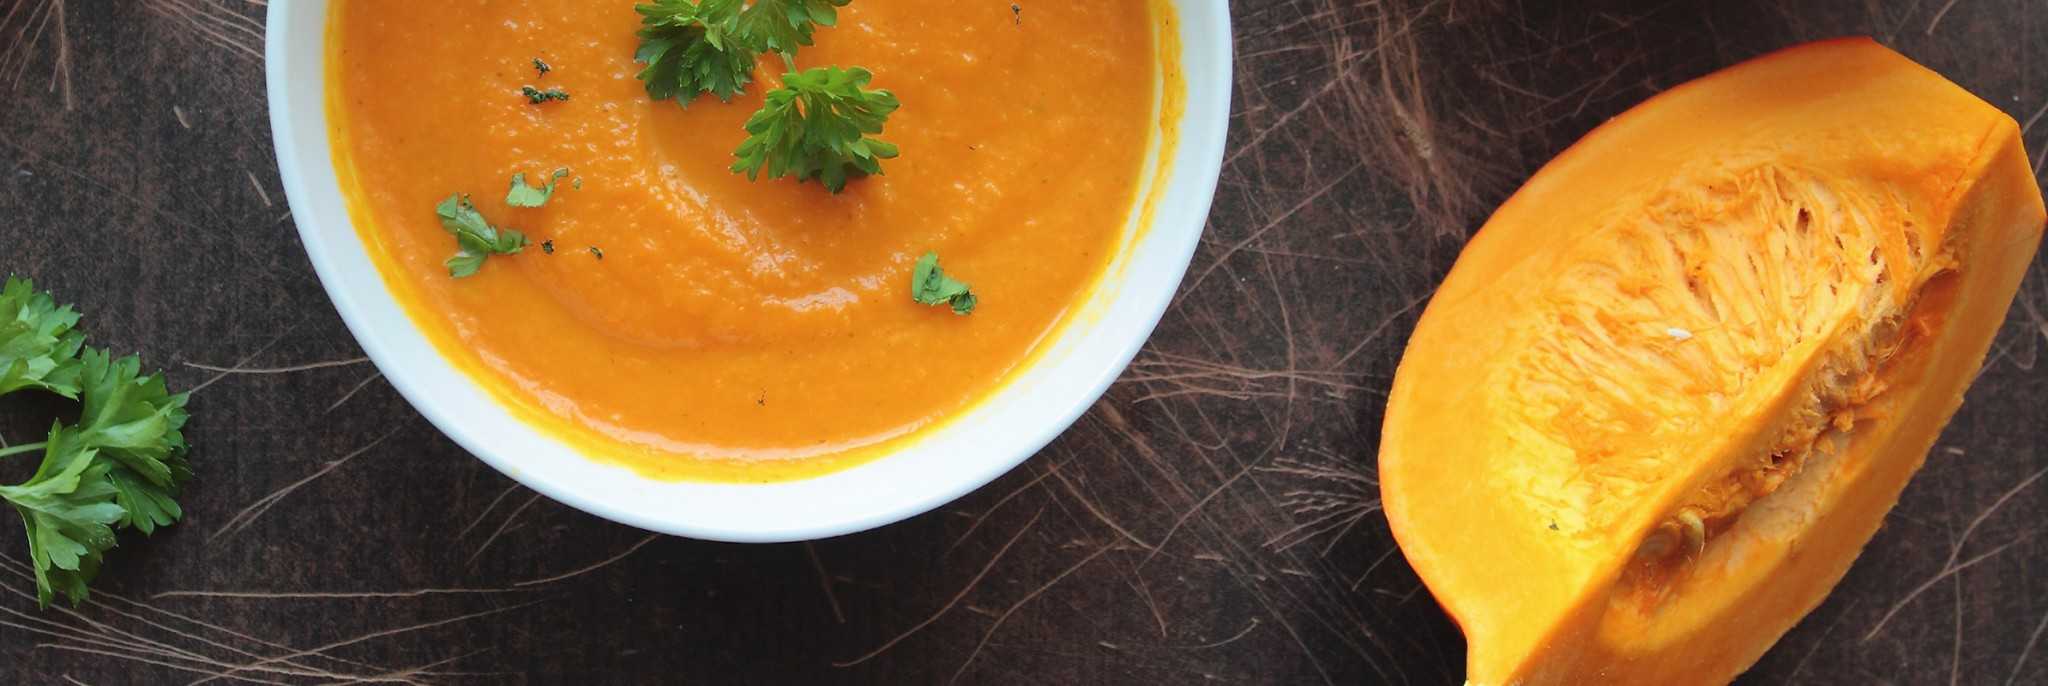 7 Anything-But-Basic Pumpkin Recipes to Try This Fall